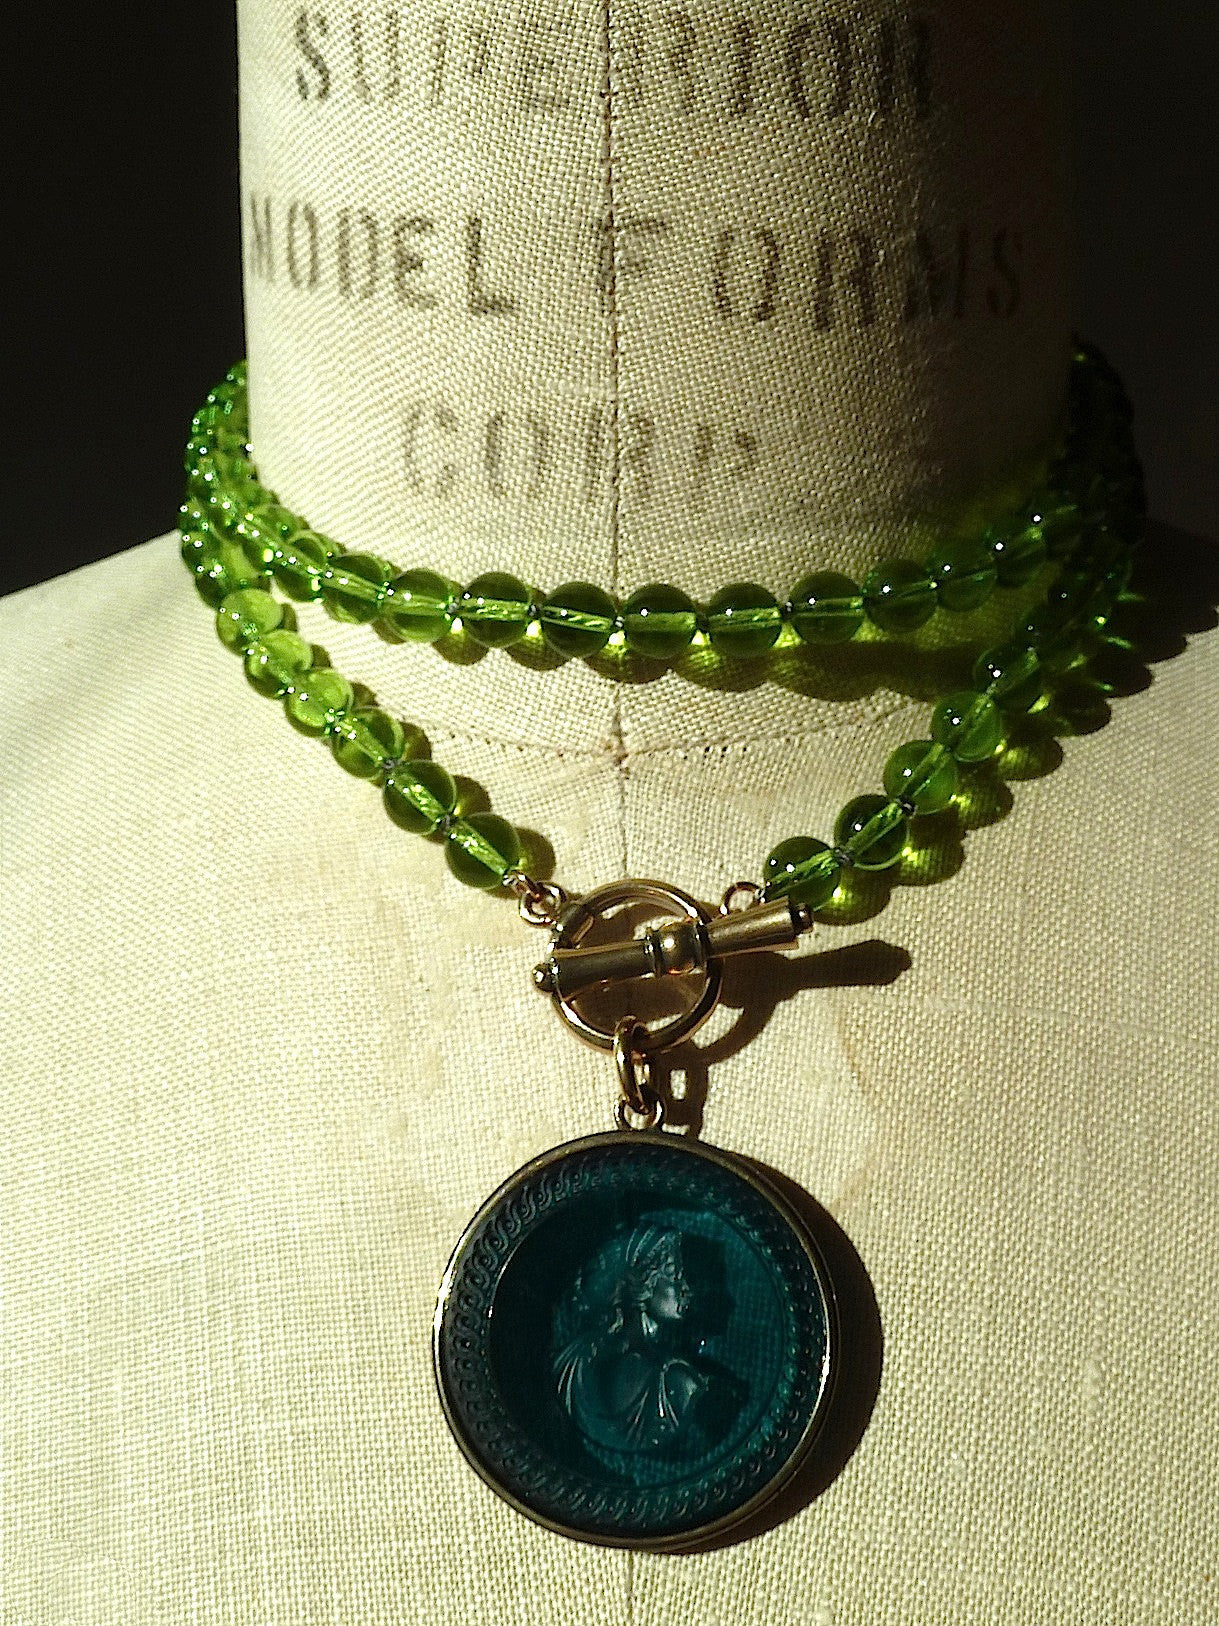 Necklace Intaglio On 30 Inch Glass Bead